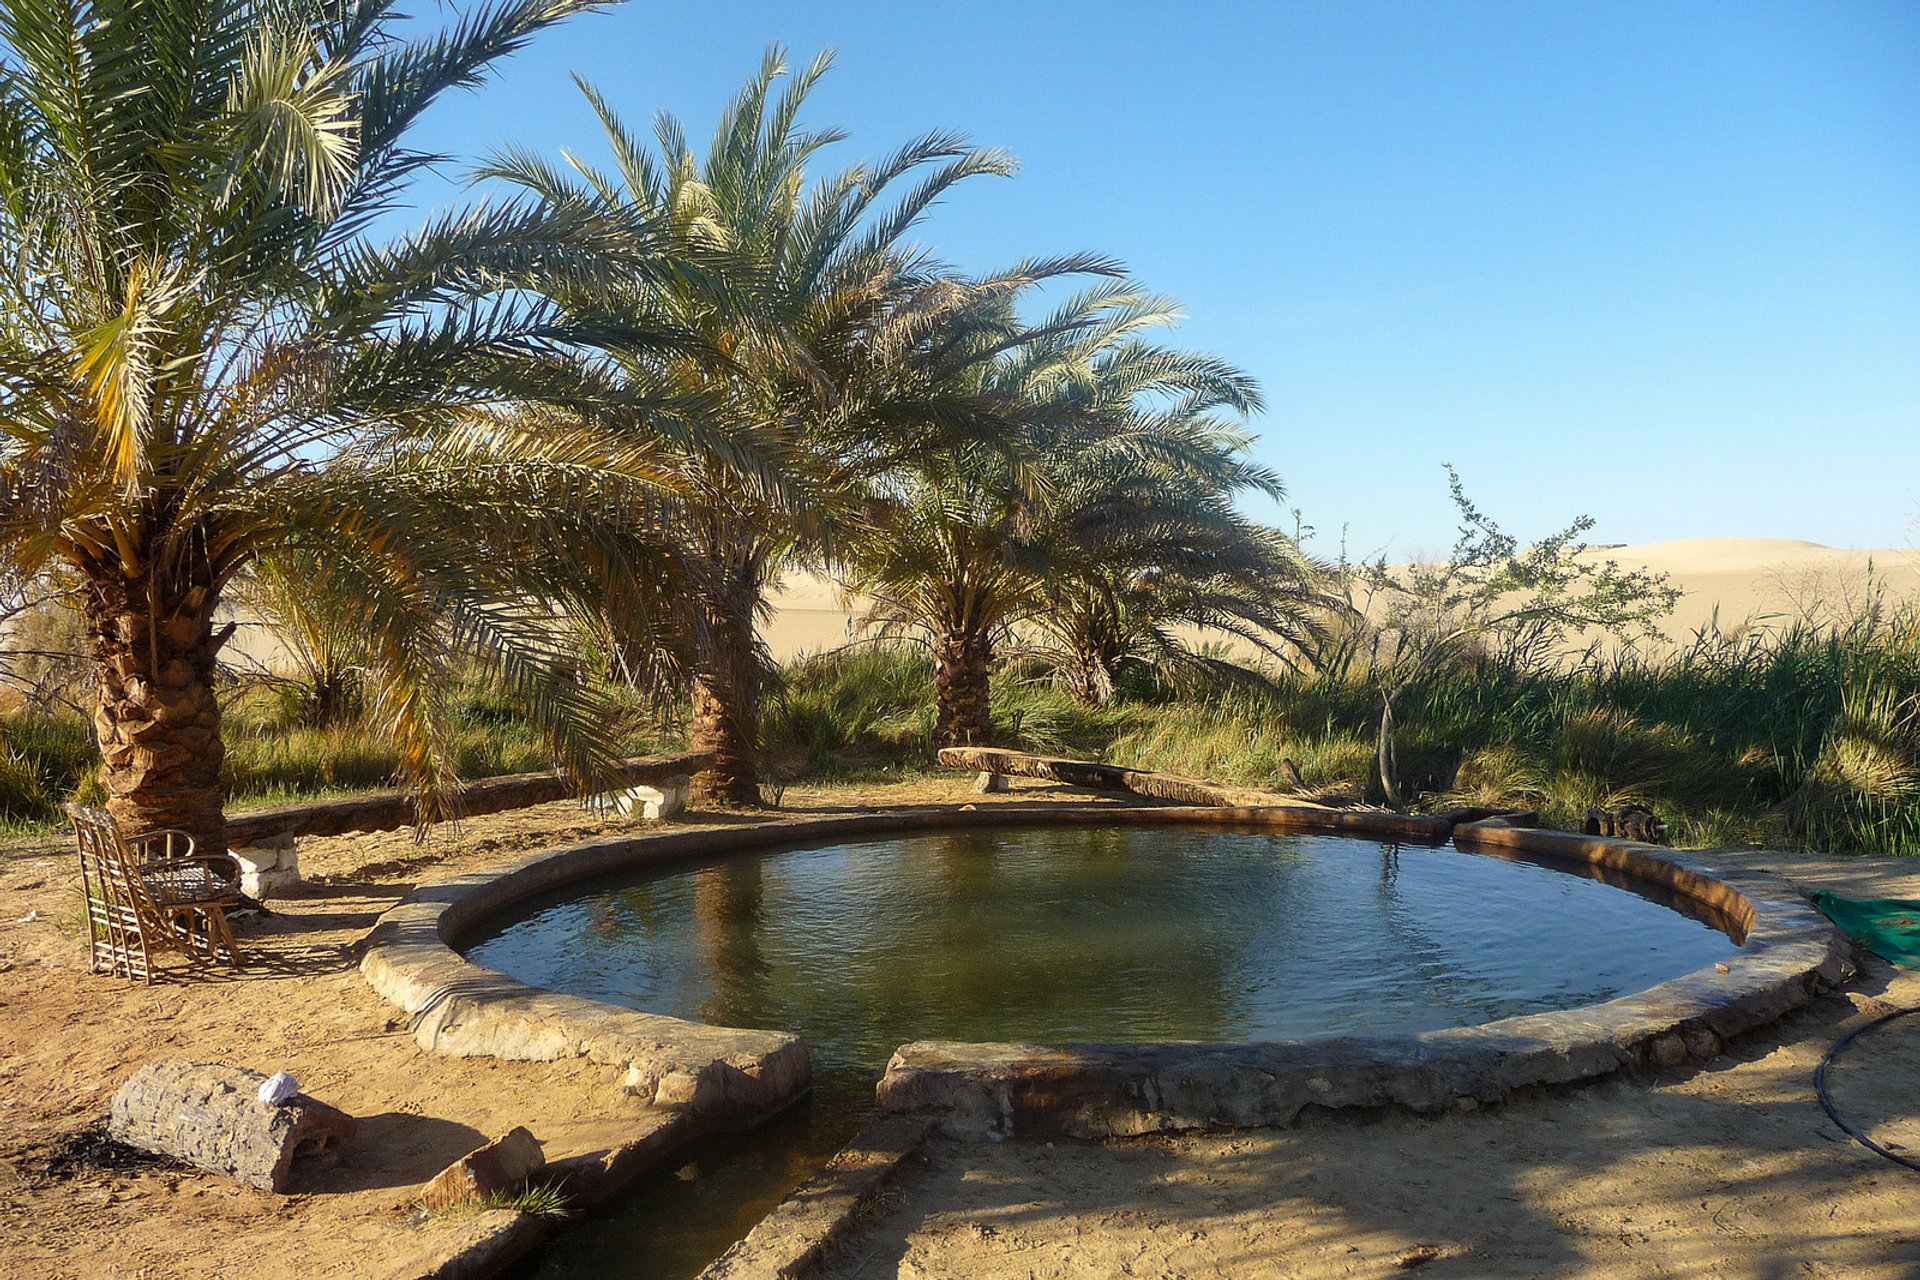 Mineral Springs in Siwa Oasis in Egypt 2020 - Best Time